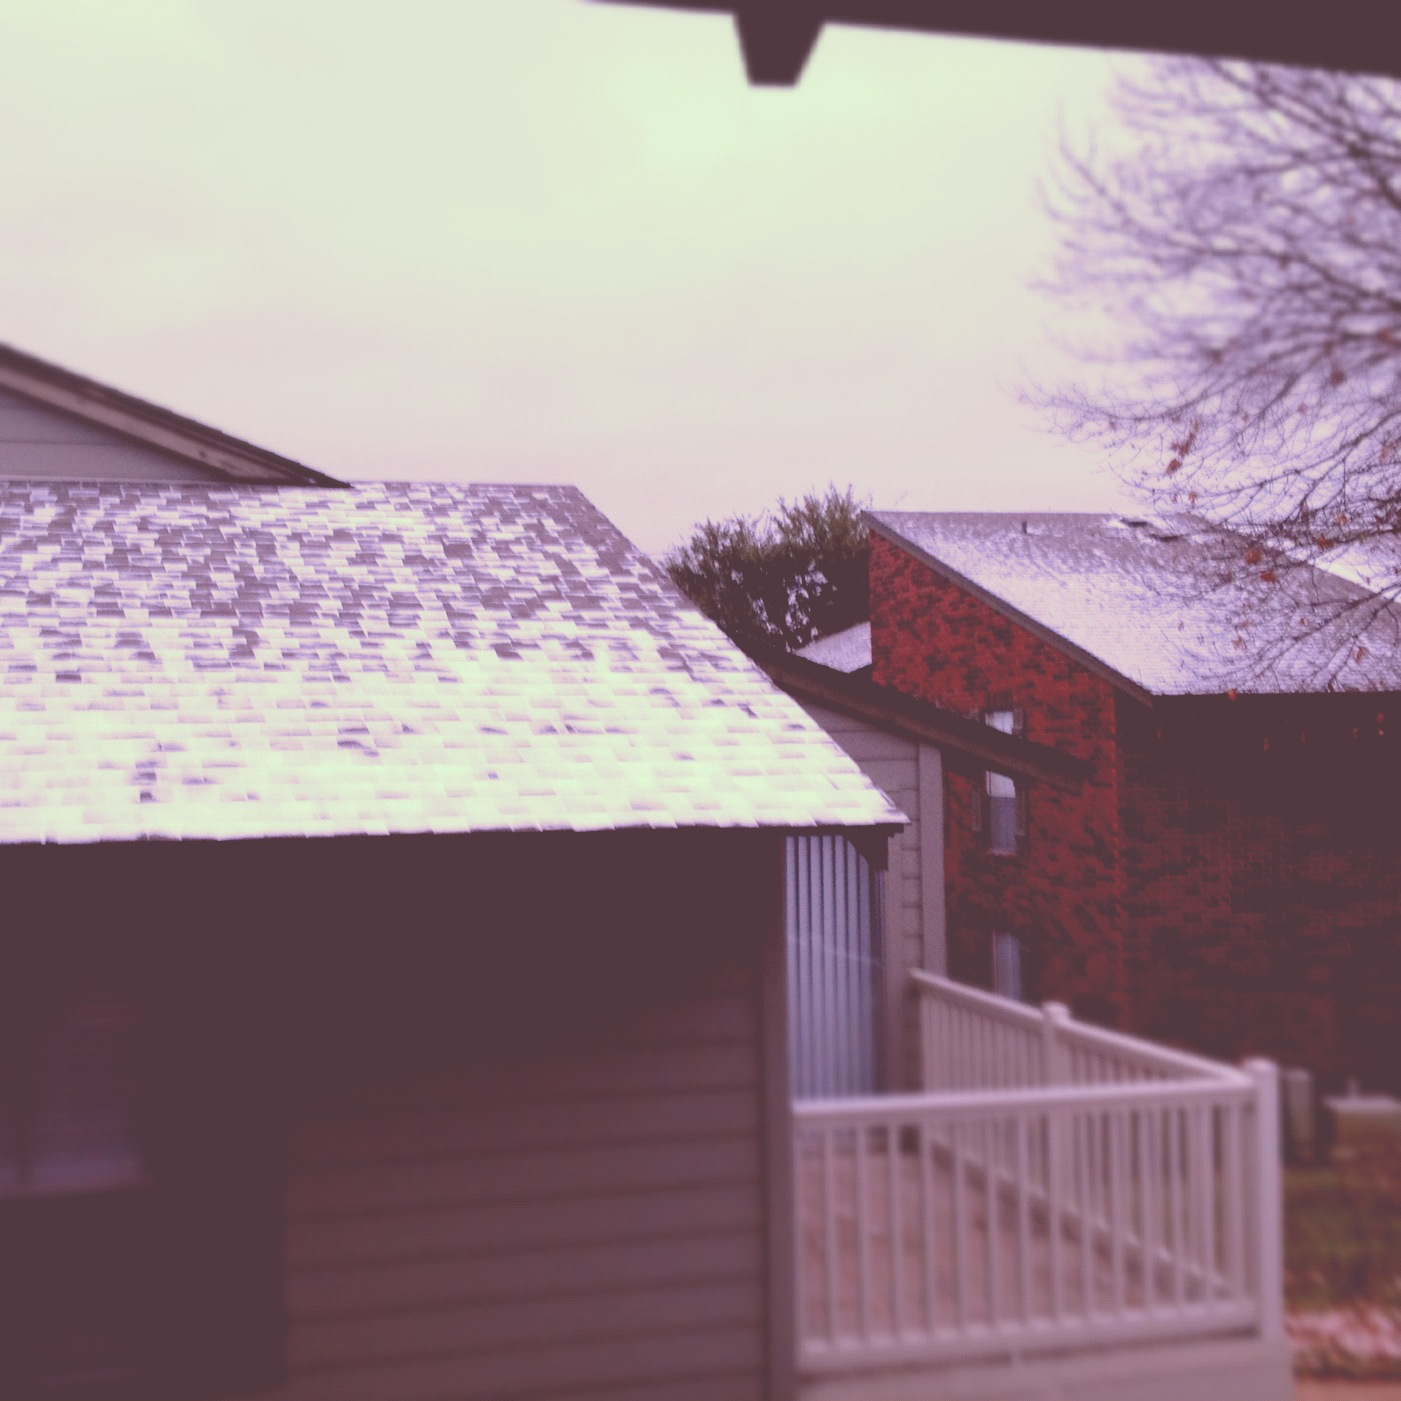 Snow on the Rooftops